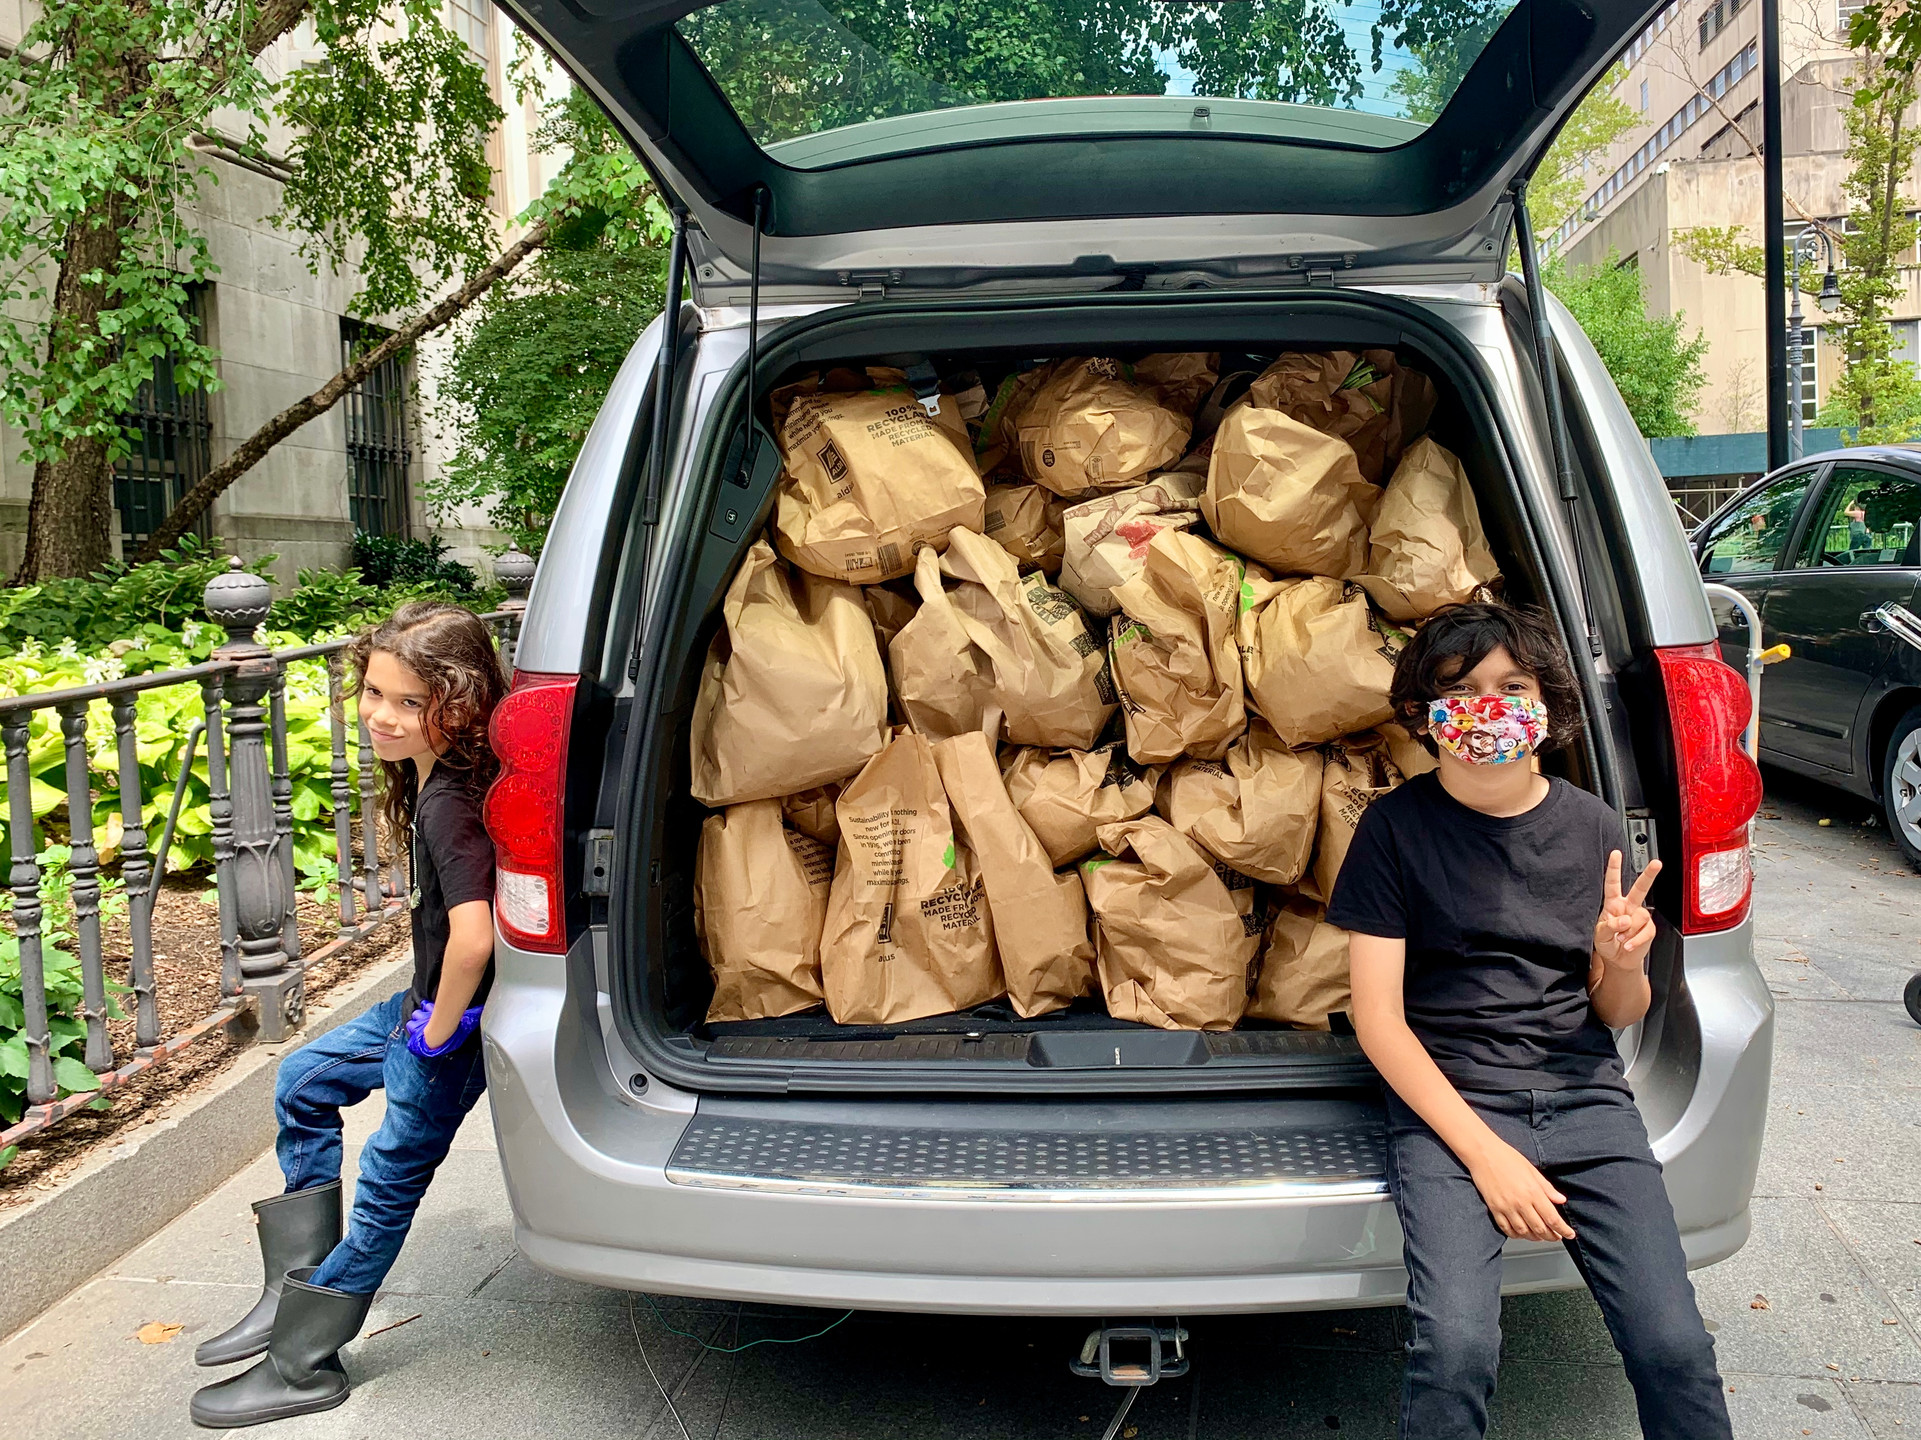 To the left, volunteer Cypress, and to the right, co-founder of Chilis on Wheels, Ollie Carrera in front of a loaded car, on their way to distribution. Kids helping out kids.